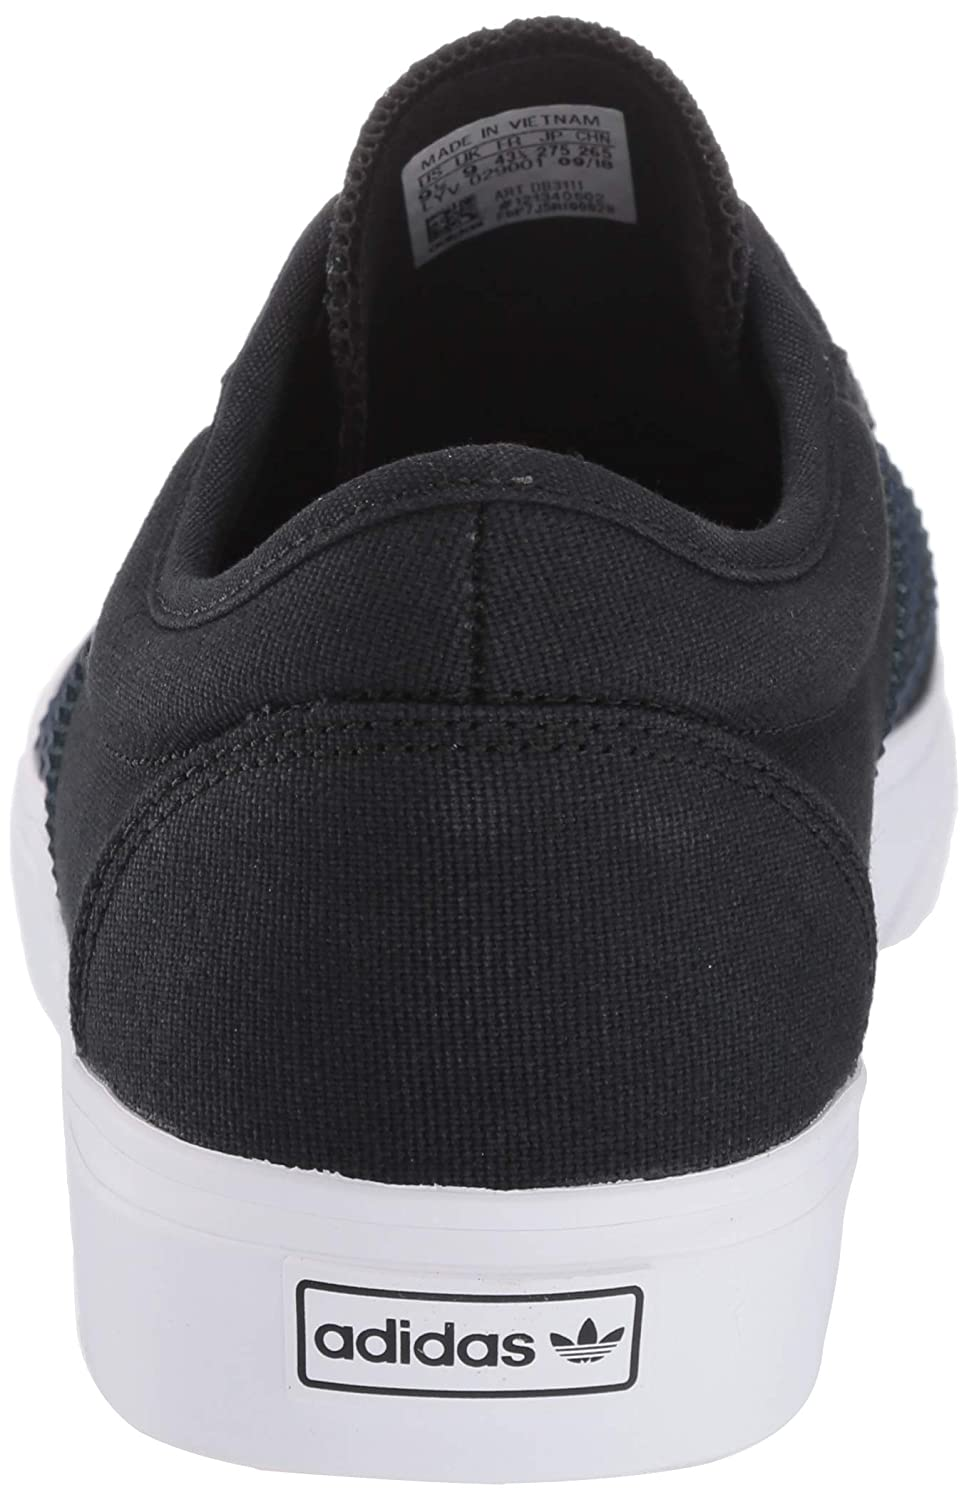 newest 3f35c 5a134 Amazon.com  adidas Mens Adi-Ease Lace Up Sneaker  Fashion Sn